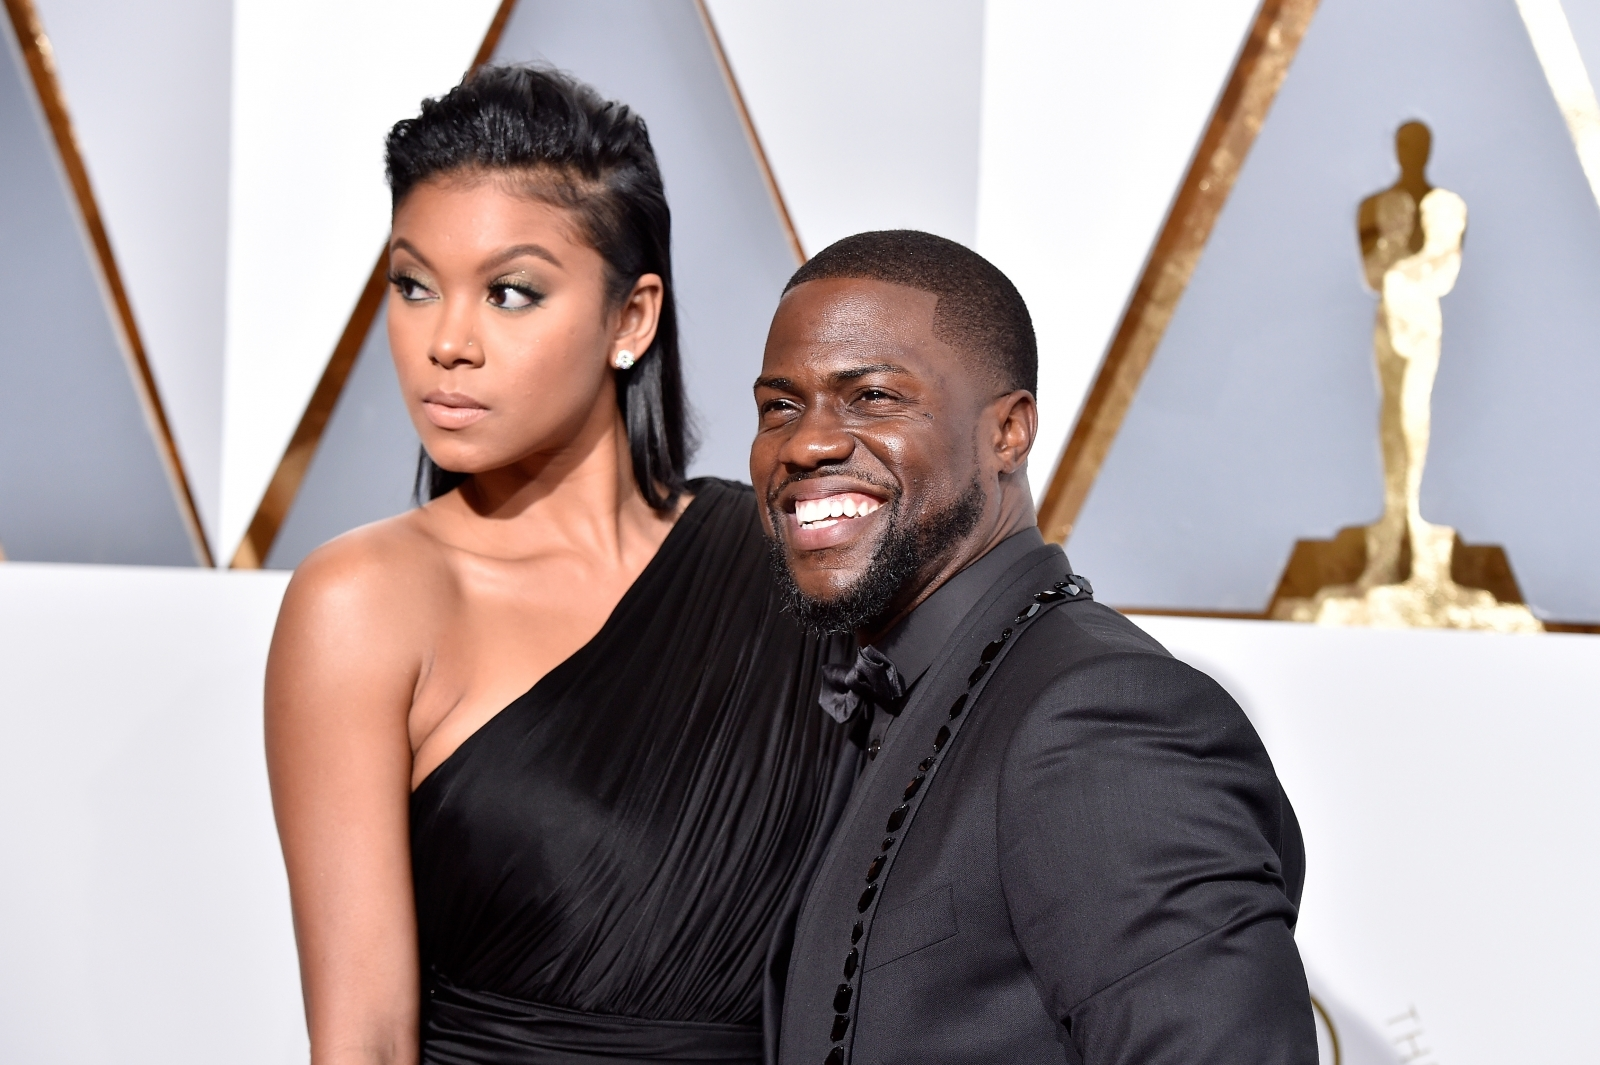 No paternity leave for Kevin Hart